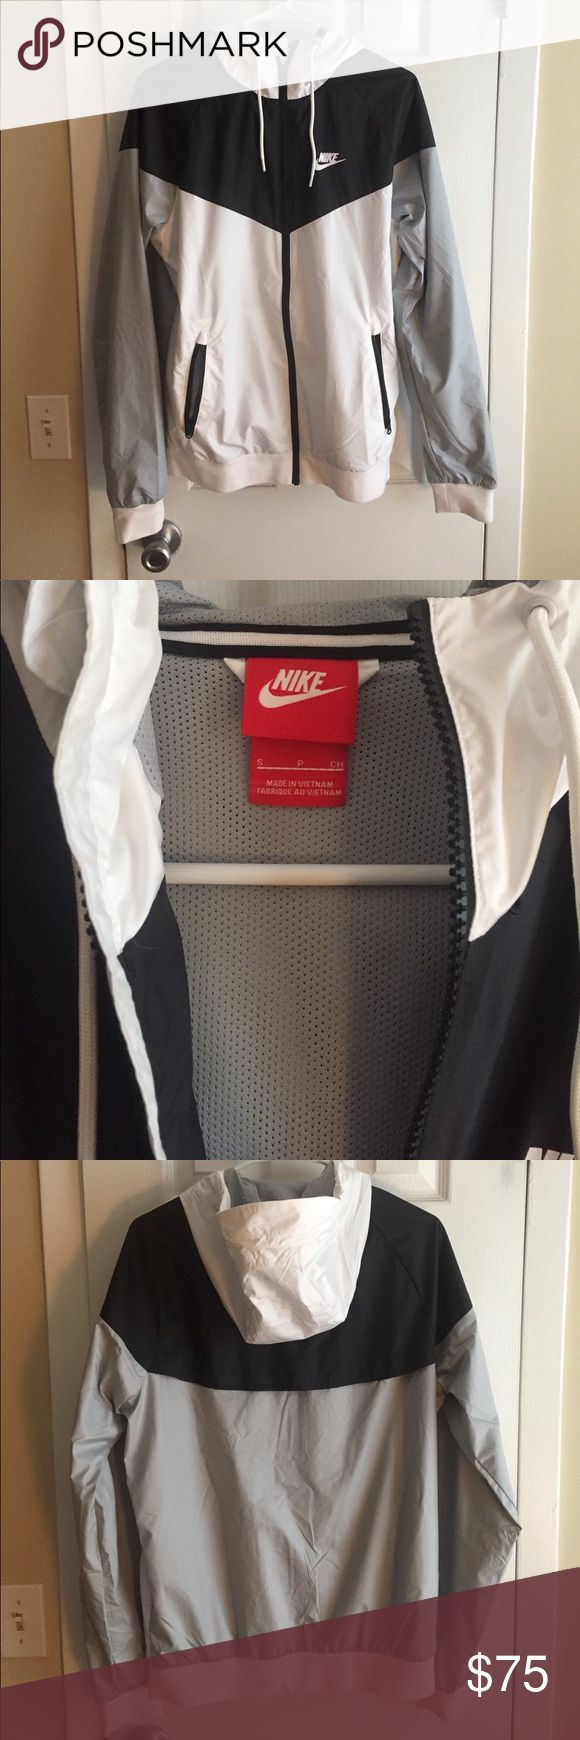 Men's Nike Windrunner Great condition, only worn a few times. Men's size small - I'm usually a small/medium in women's and the jacket fit just a little bit on me (which was the ideal fit). White, gray, and black colorblock! Nike Jackets & Coats Windbreakers